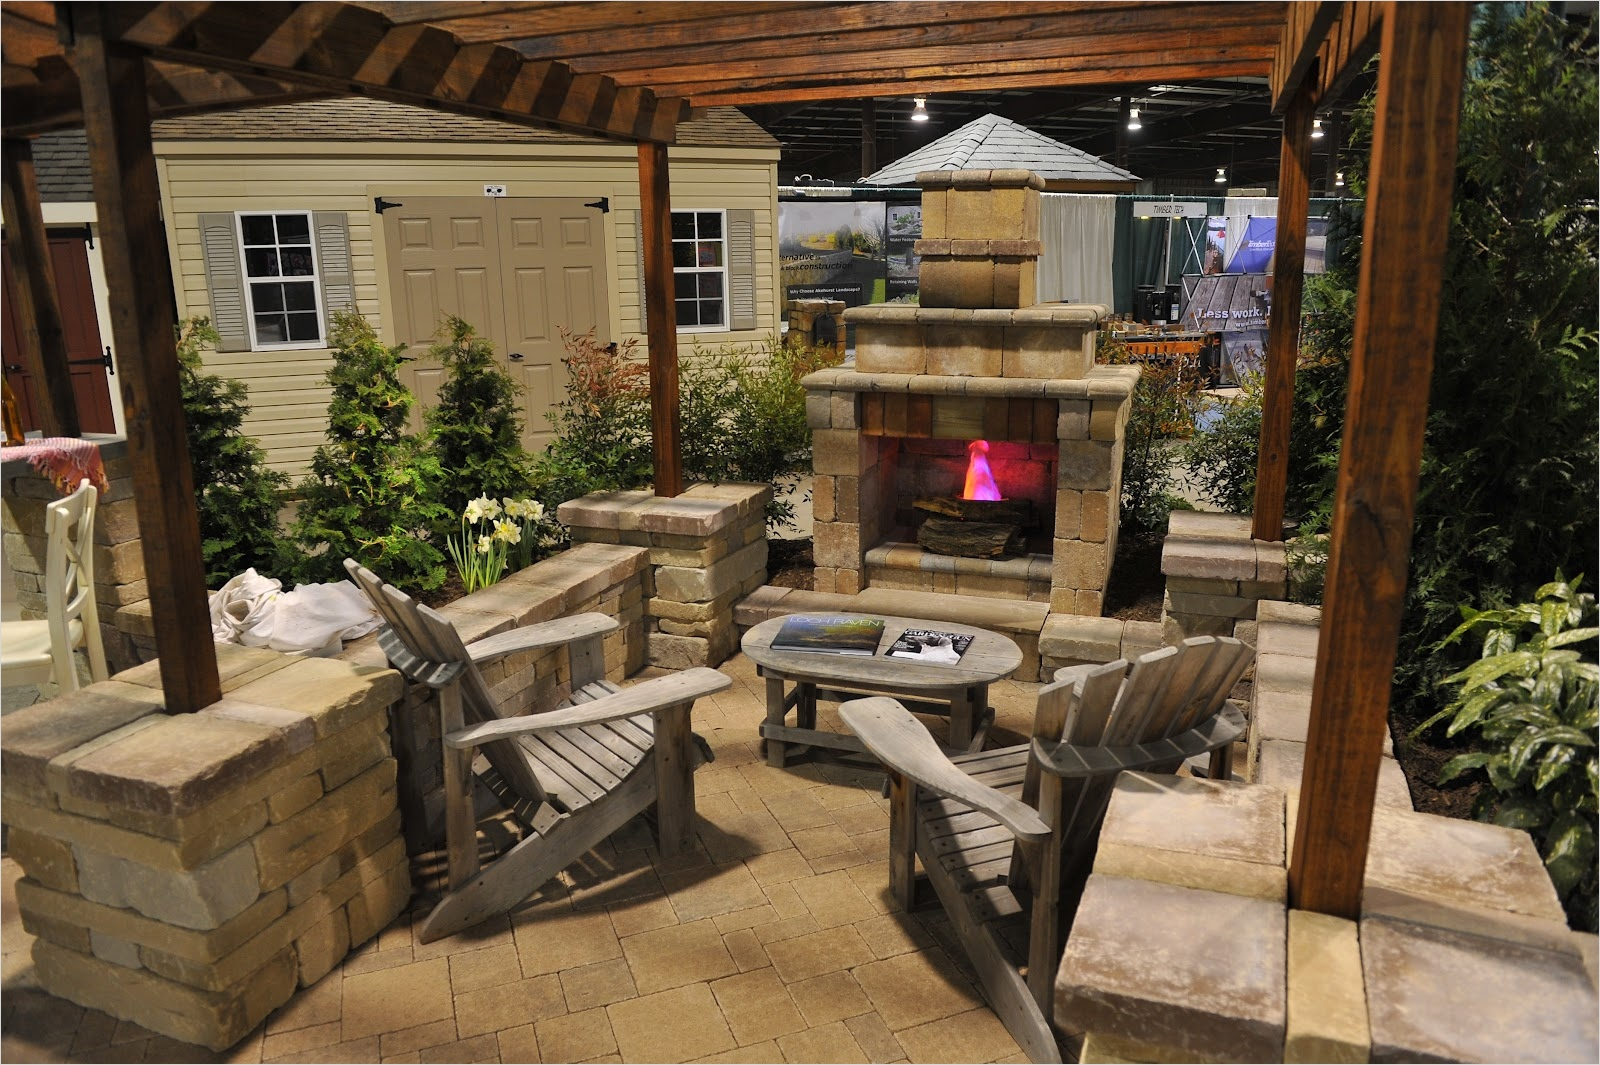 45 Perfect Backyard Bbq Landscaping Ideas 12 Backyard Bbq Entertainment Ideas Backyard and Yard Design for Village 7